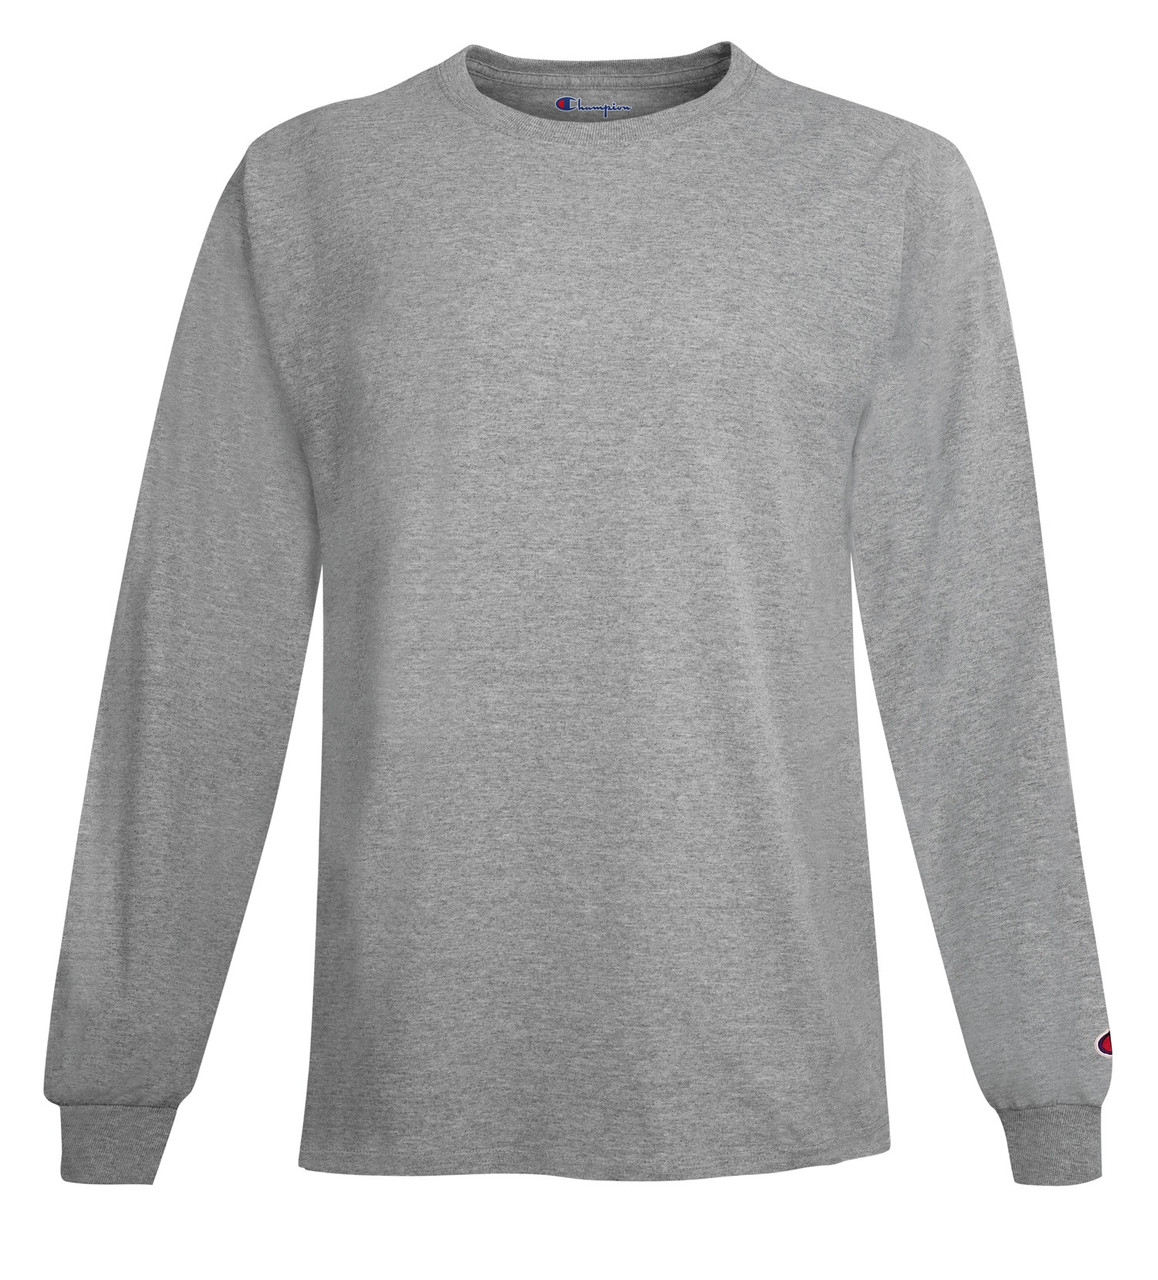 8242c894 Light Steel Front Champion CC8C Long Sleeve Cotton Tee Sweatshirt |  Athleticwear.ca